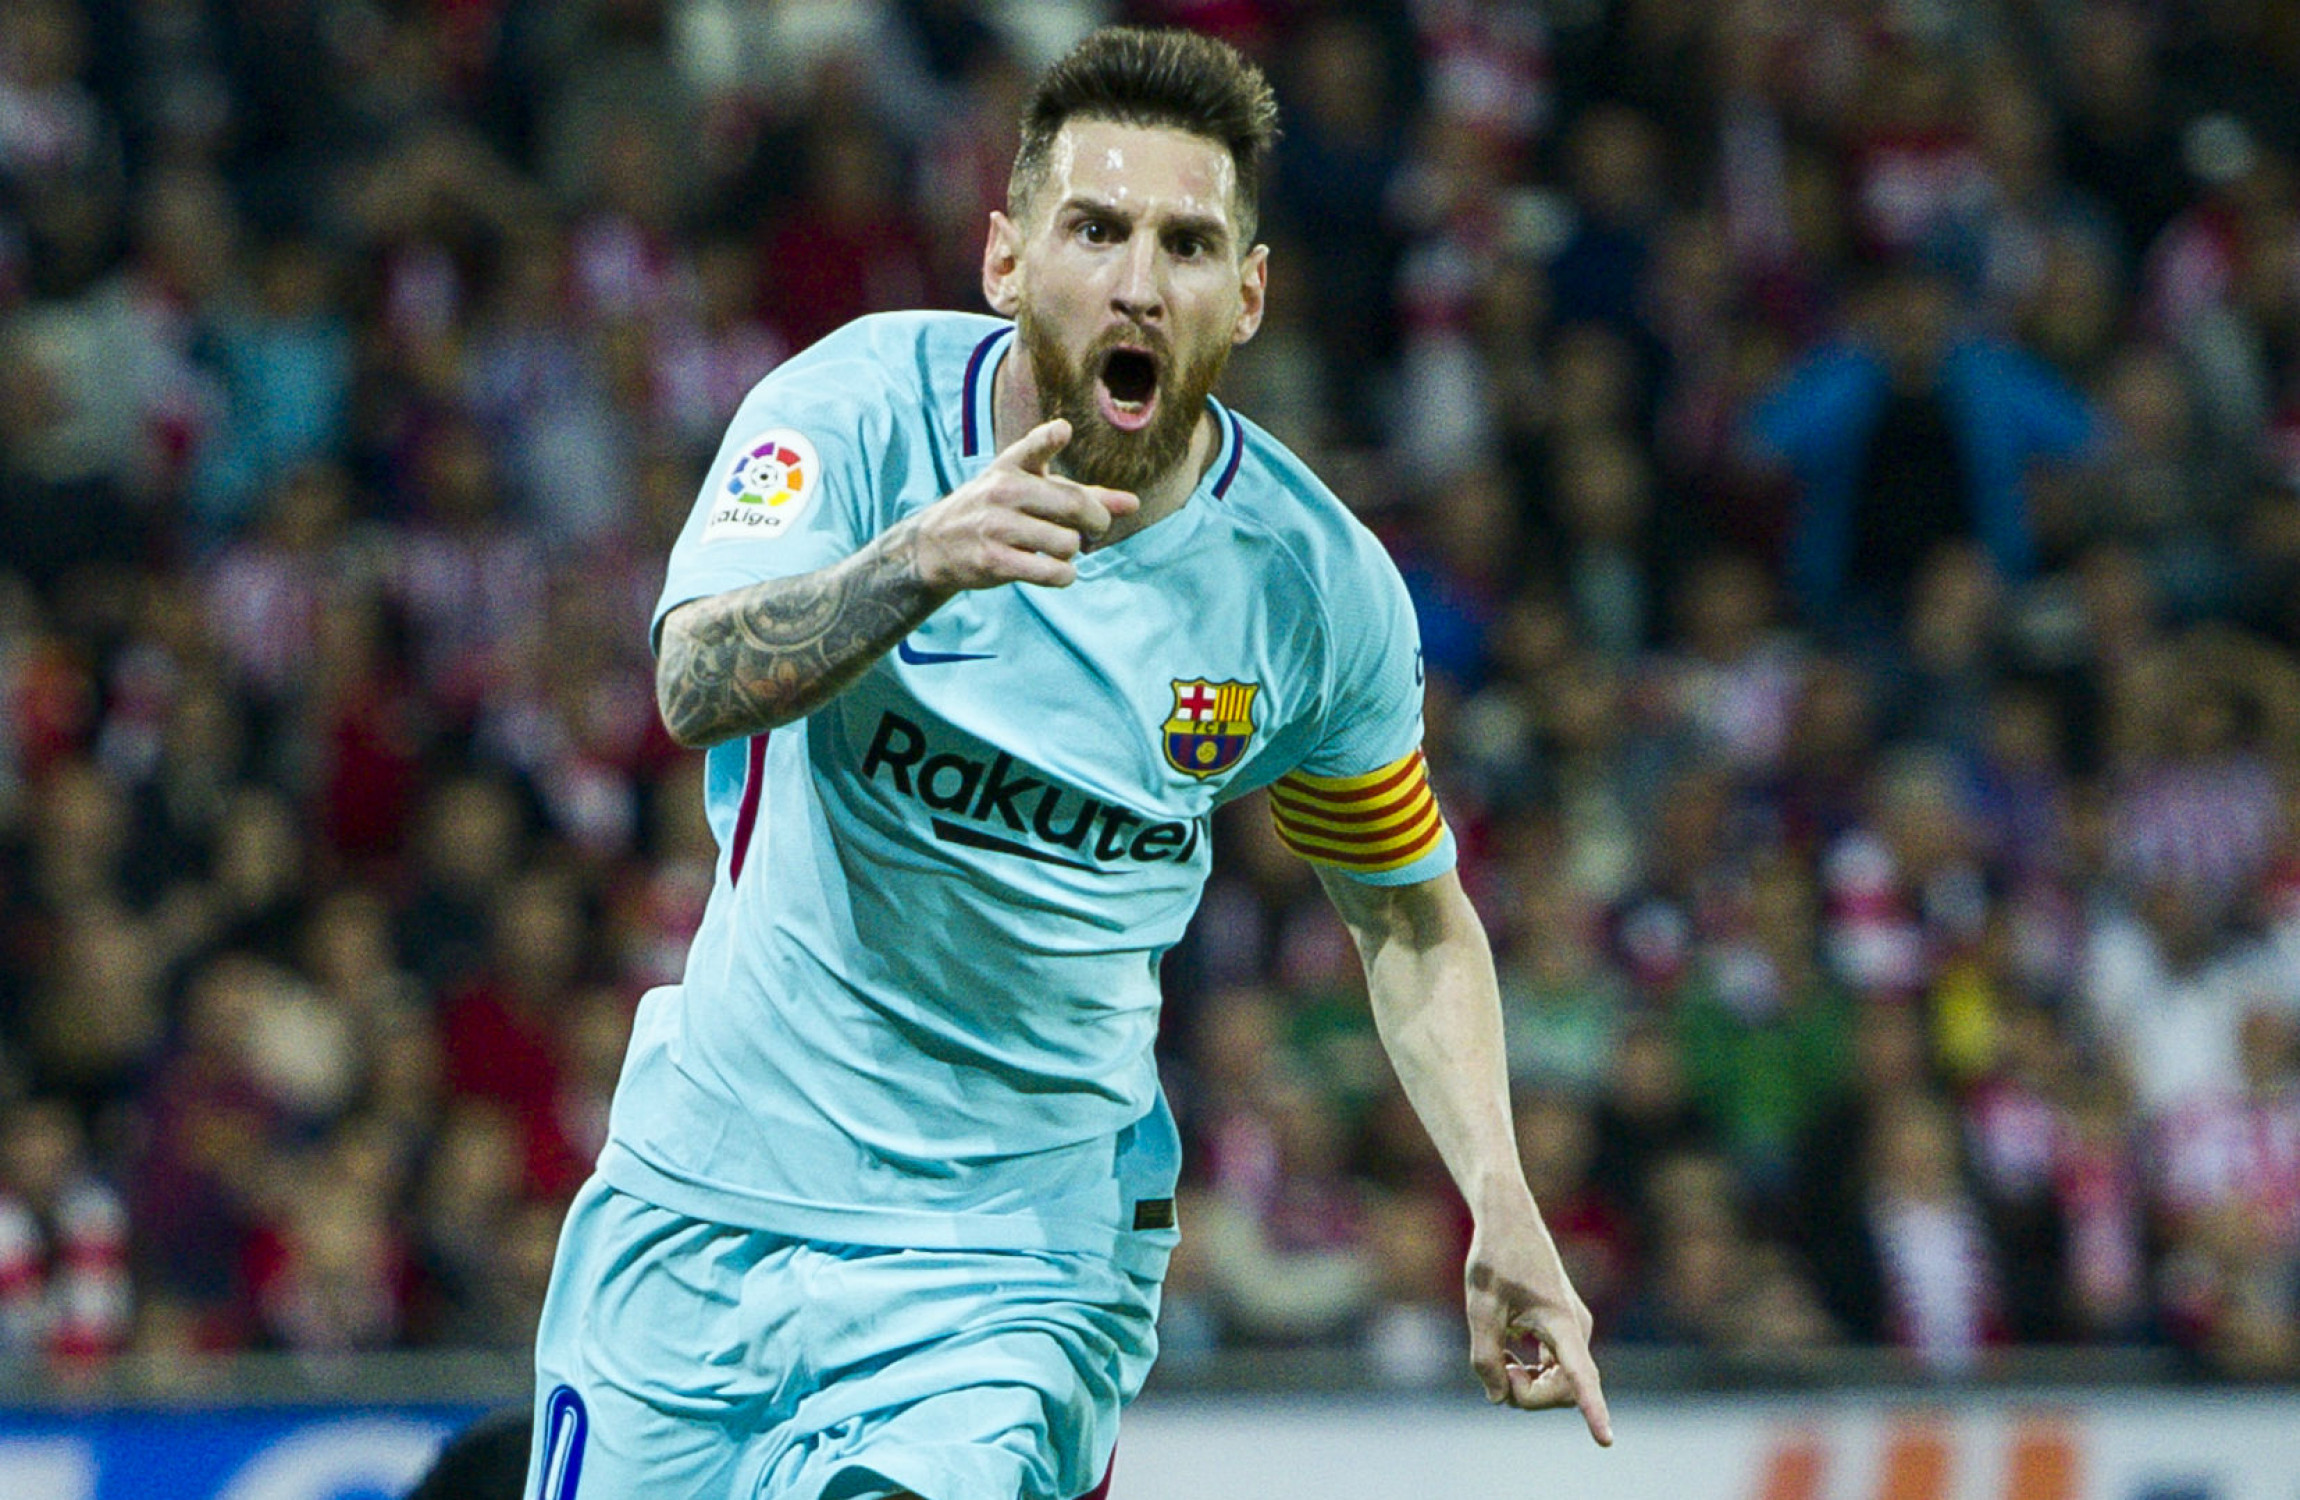 Lionel Messi, Paulinho fire Barcelona past Athletic Bilbao